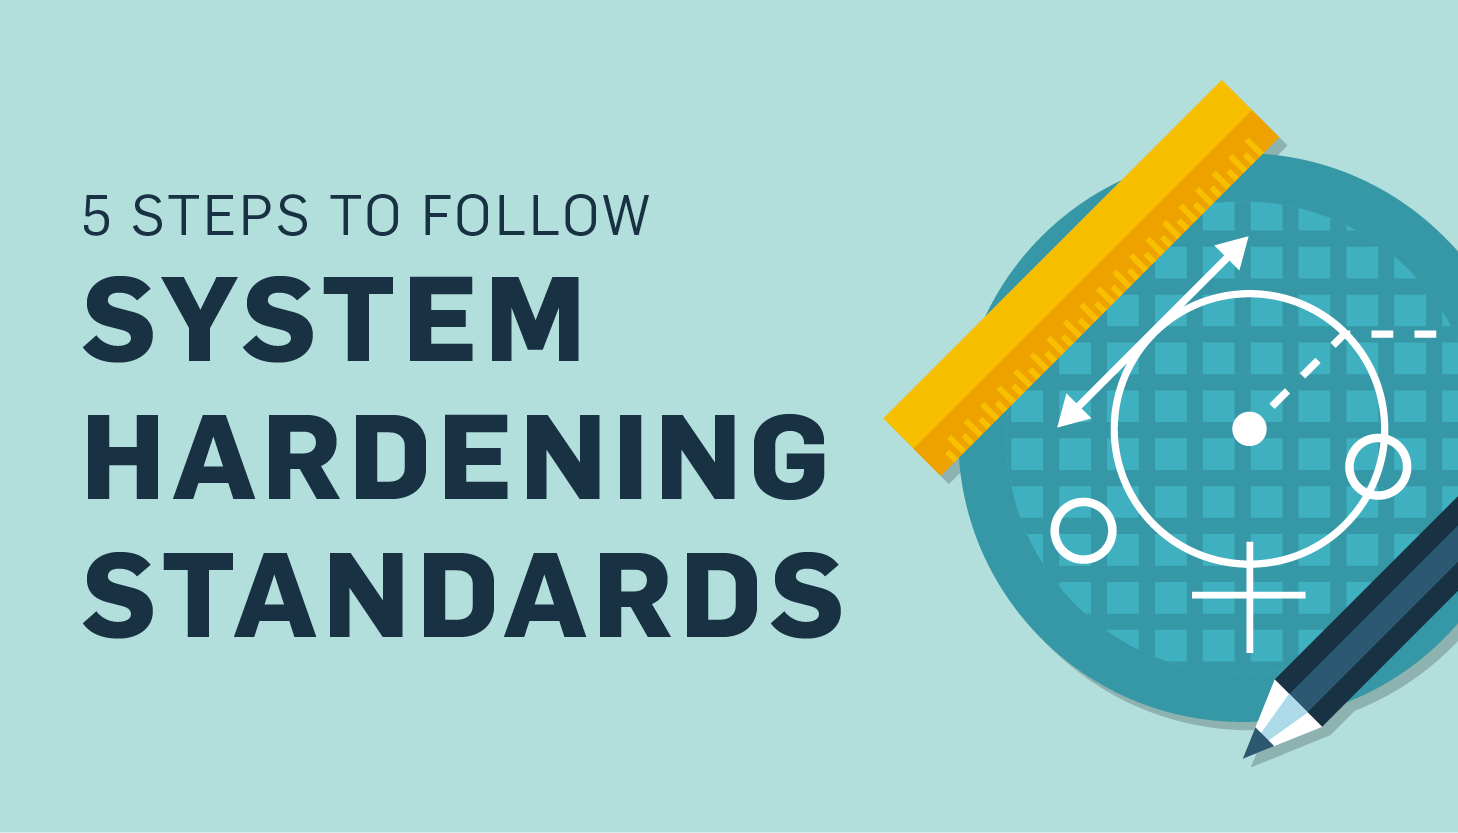 System Hardening Standards: How to Comply with PCI Requirement 2.2